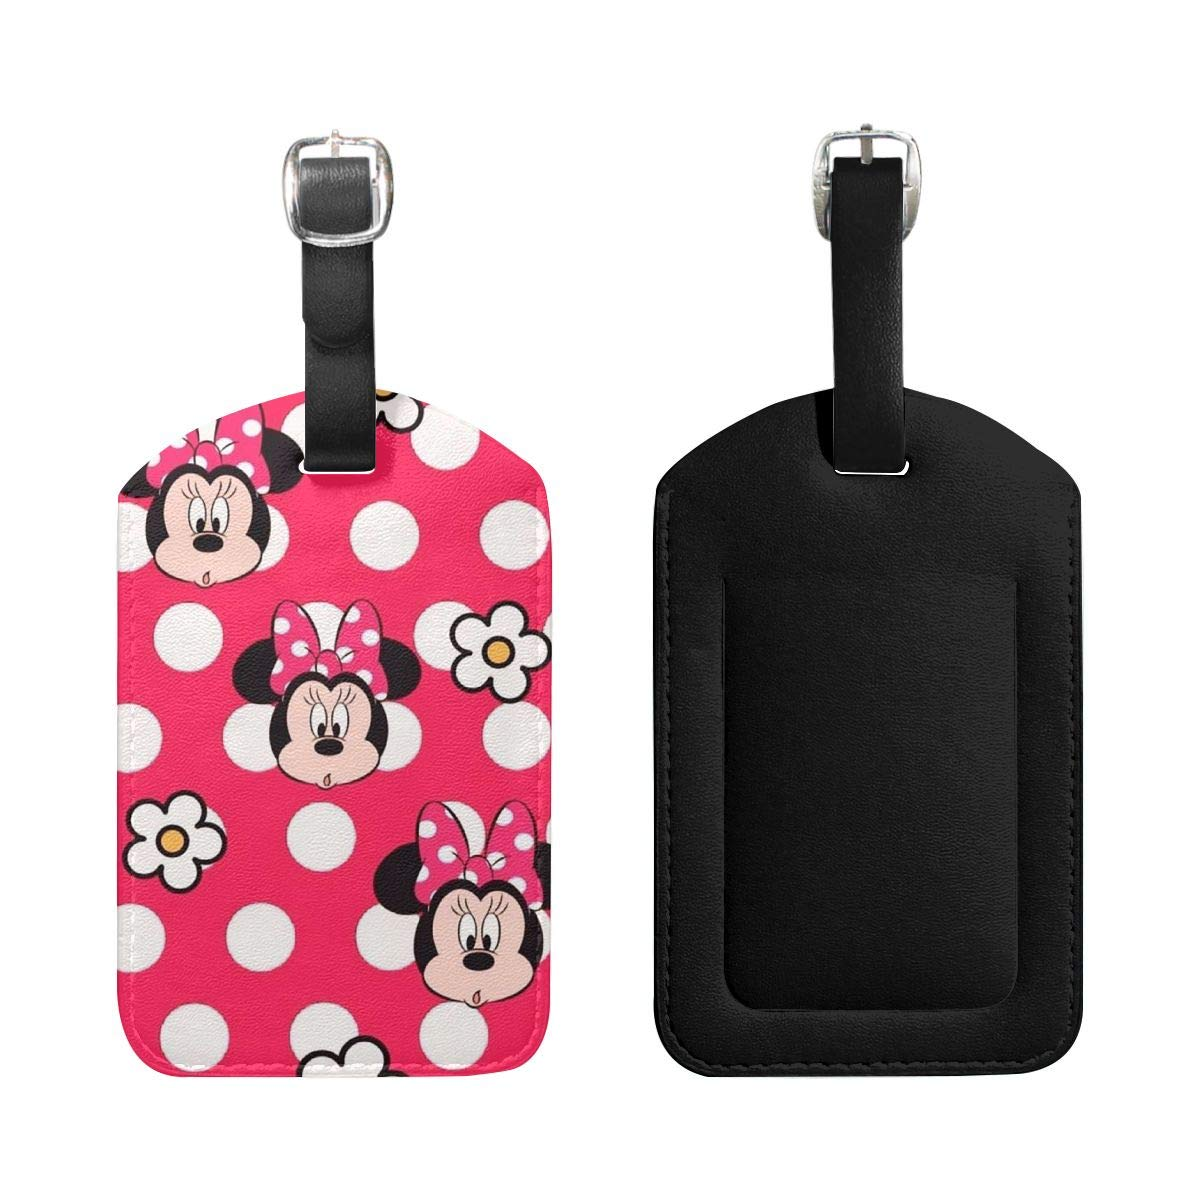 PU Leather Luggage Tags Minnie Mouse with Flower Suitcase Labels Bag Adjustable Leather Strap Travel Accessories Set of 2